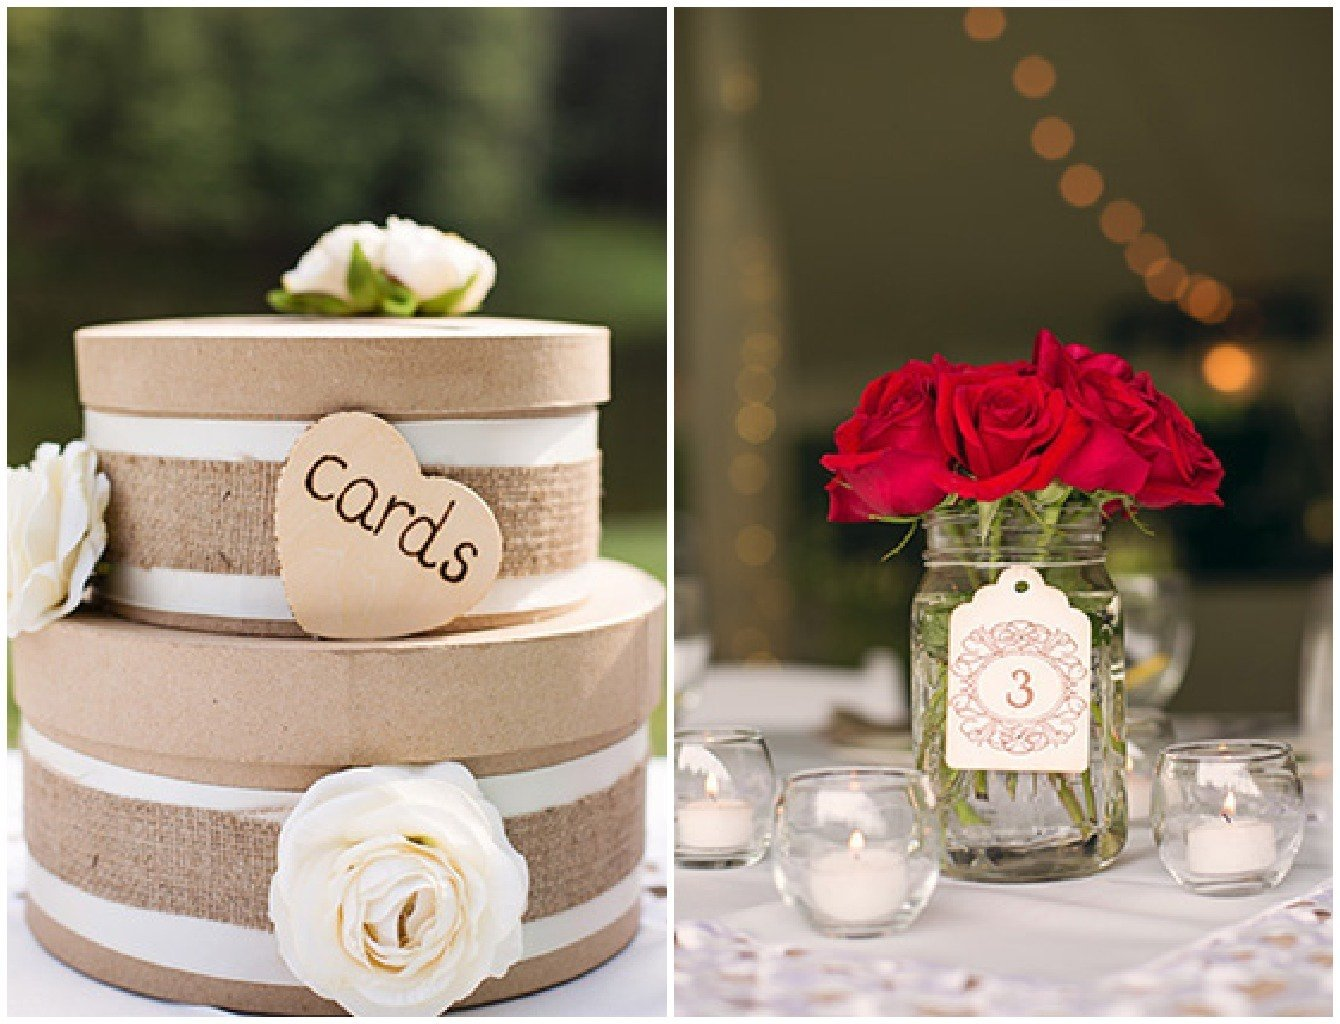 10 Most Recommended Diy Wedding Ideas On A Budget cool decorating for a wedding on budget decorations with diy wedding 2020